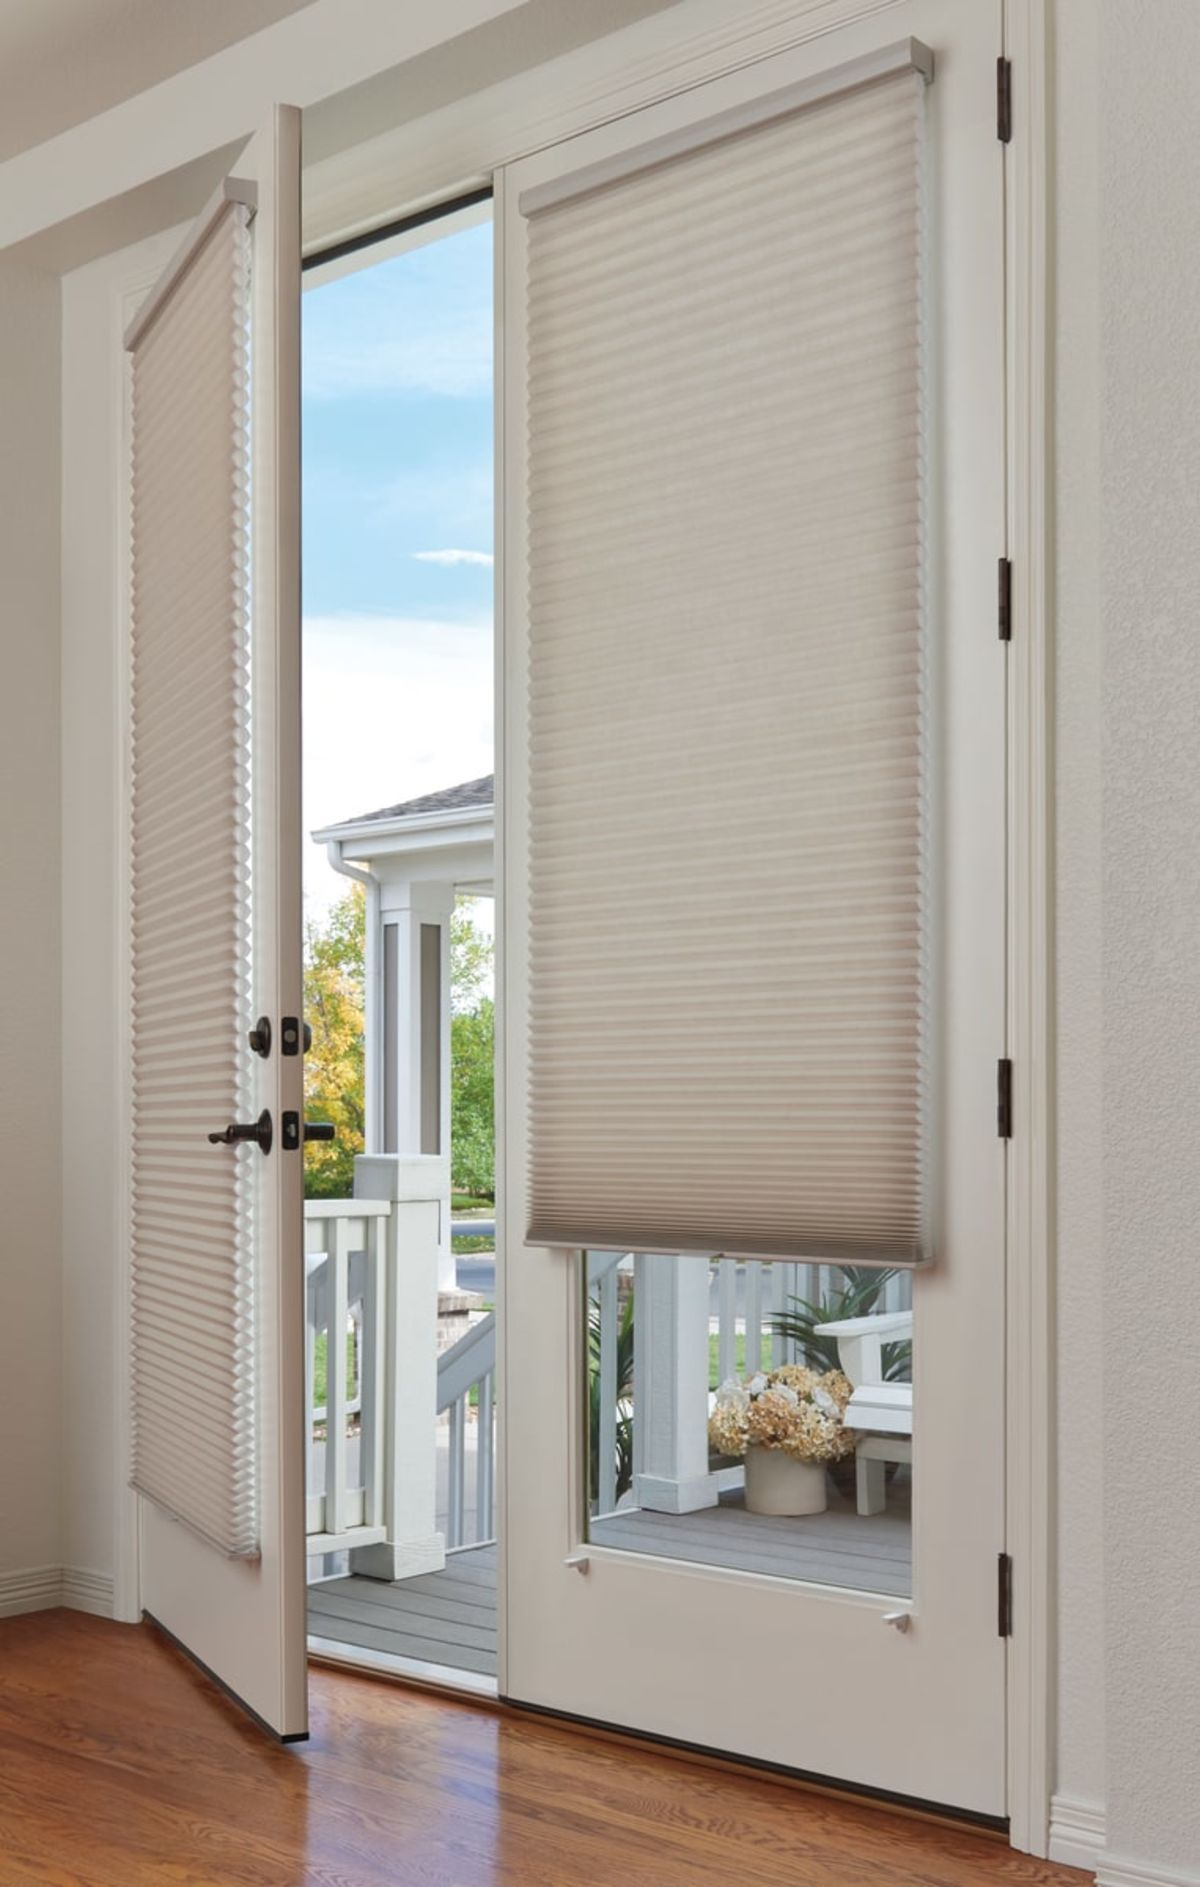 The Duette® shades from Hunter Douglas are great